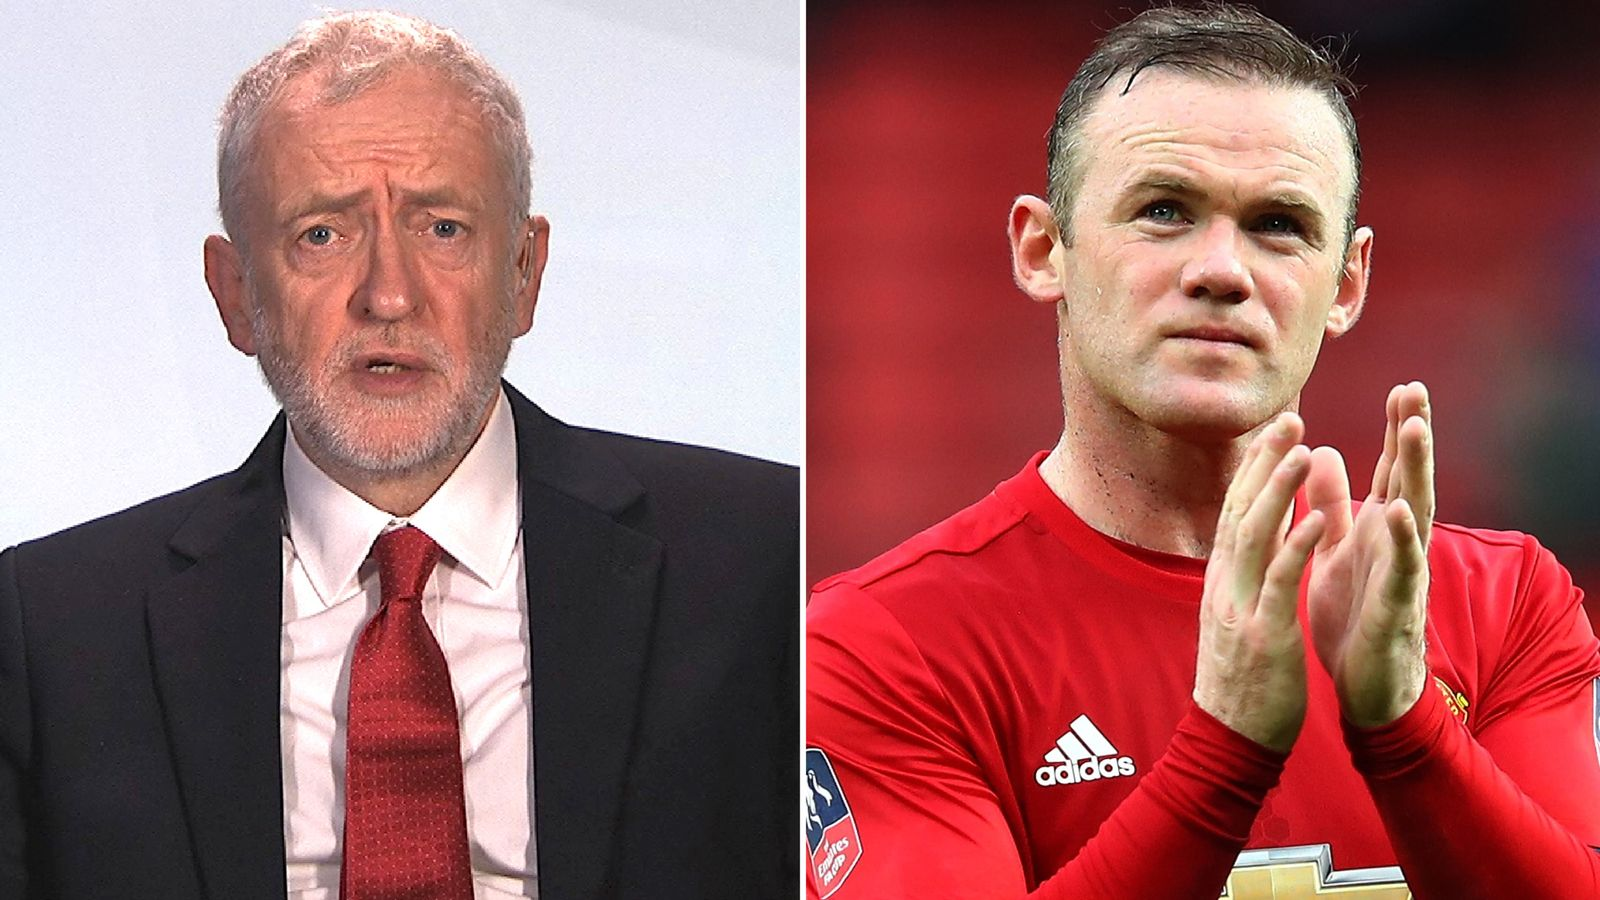 Jeremy Corbyn and Wayne Rooney